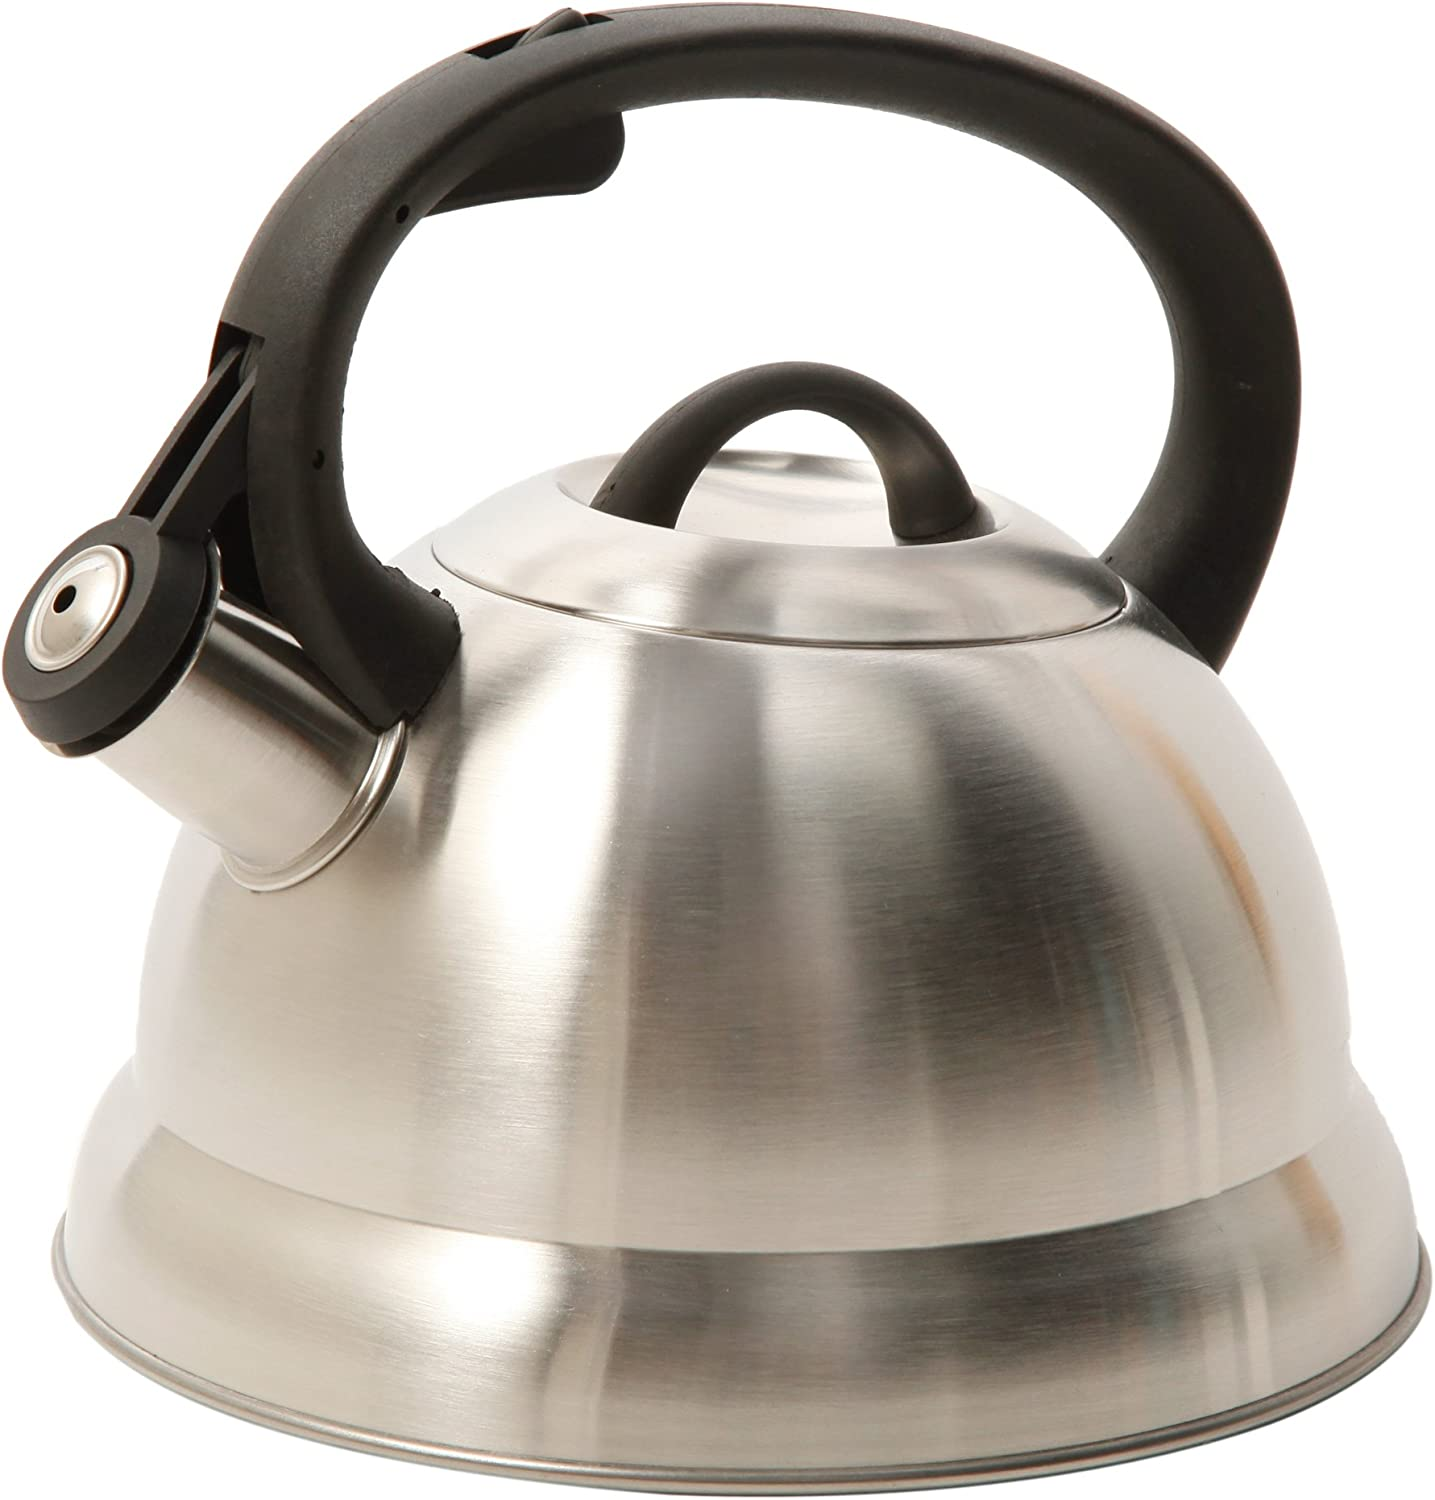 Mr. CoffeeFlintshireStainless Steel Whistling Tea Kettle